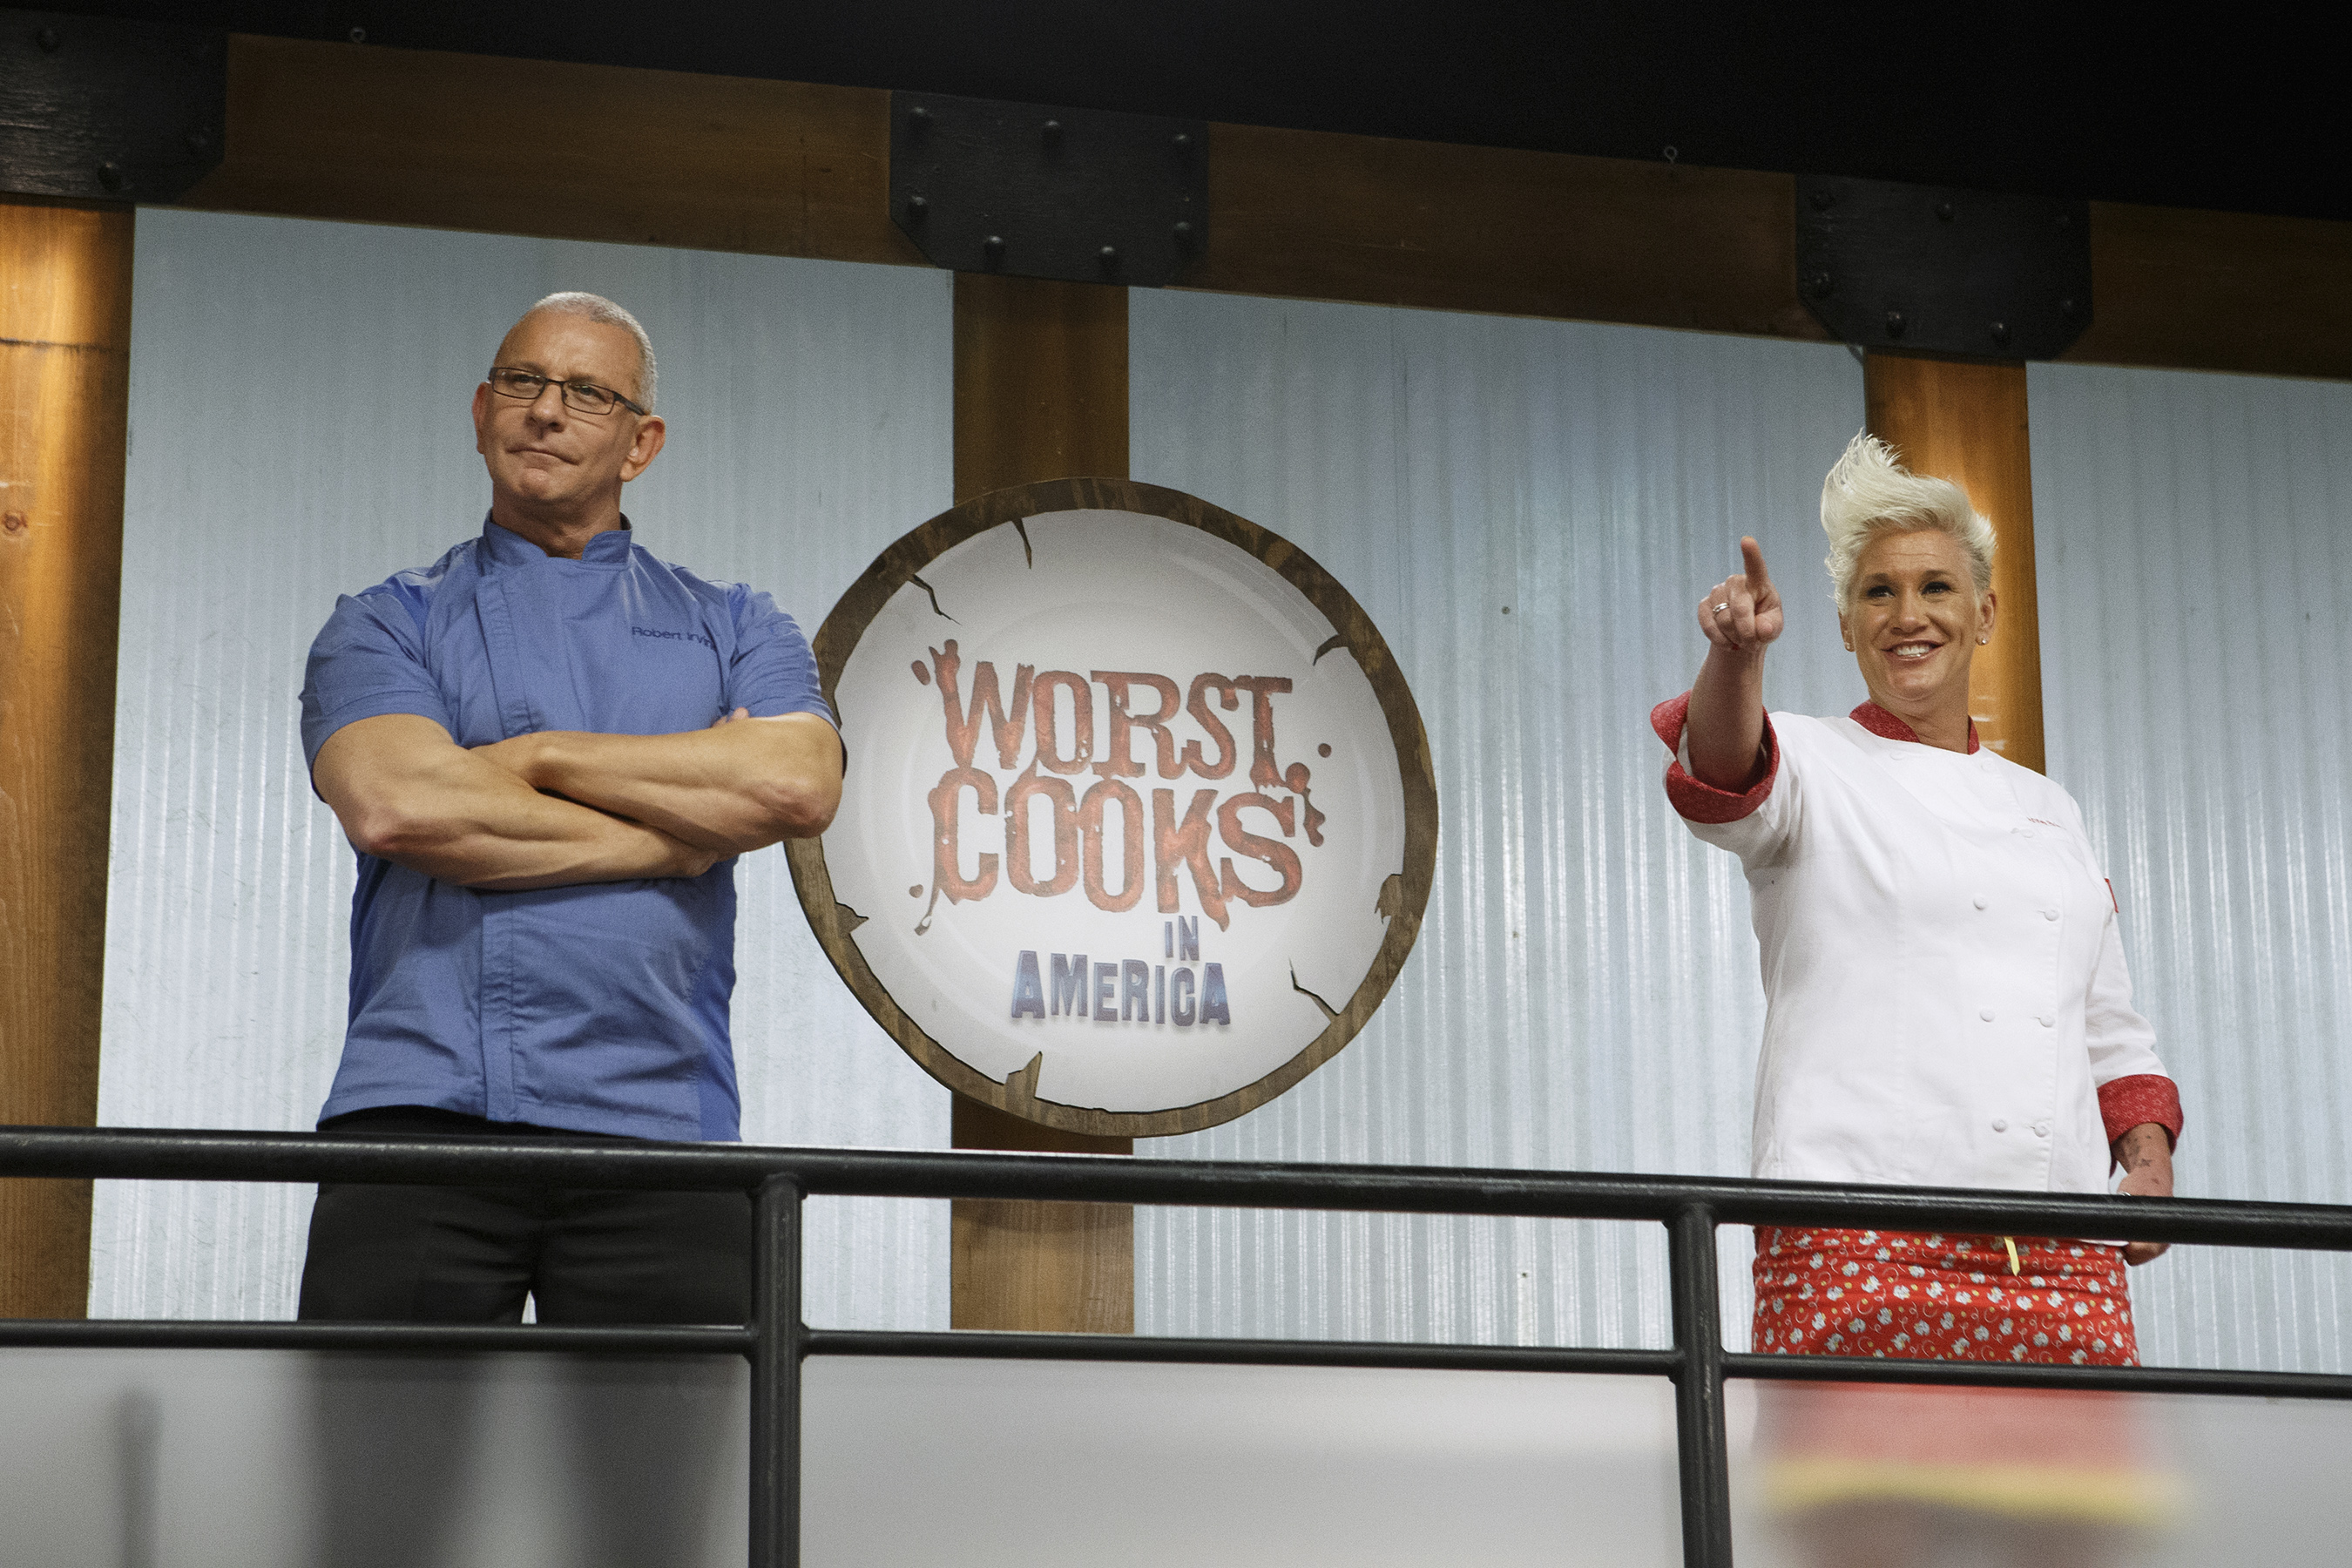 Robert Irvine and Anne Burrell watch over the recruits on Food Network's Worst Cooks in America